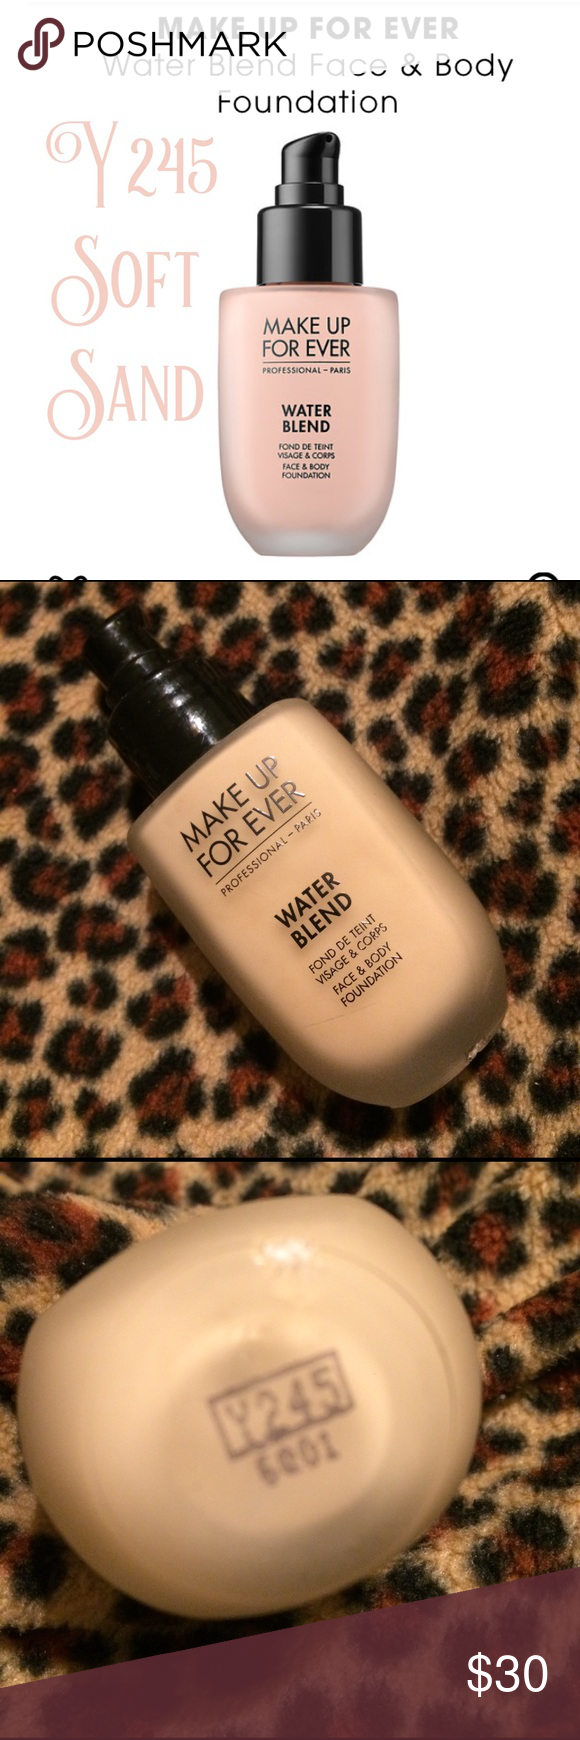 Make up forever water blend face & body foundation Body